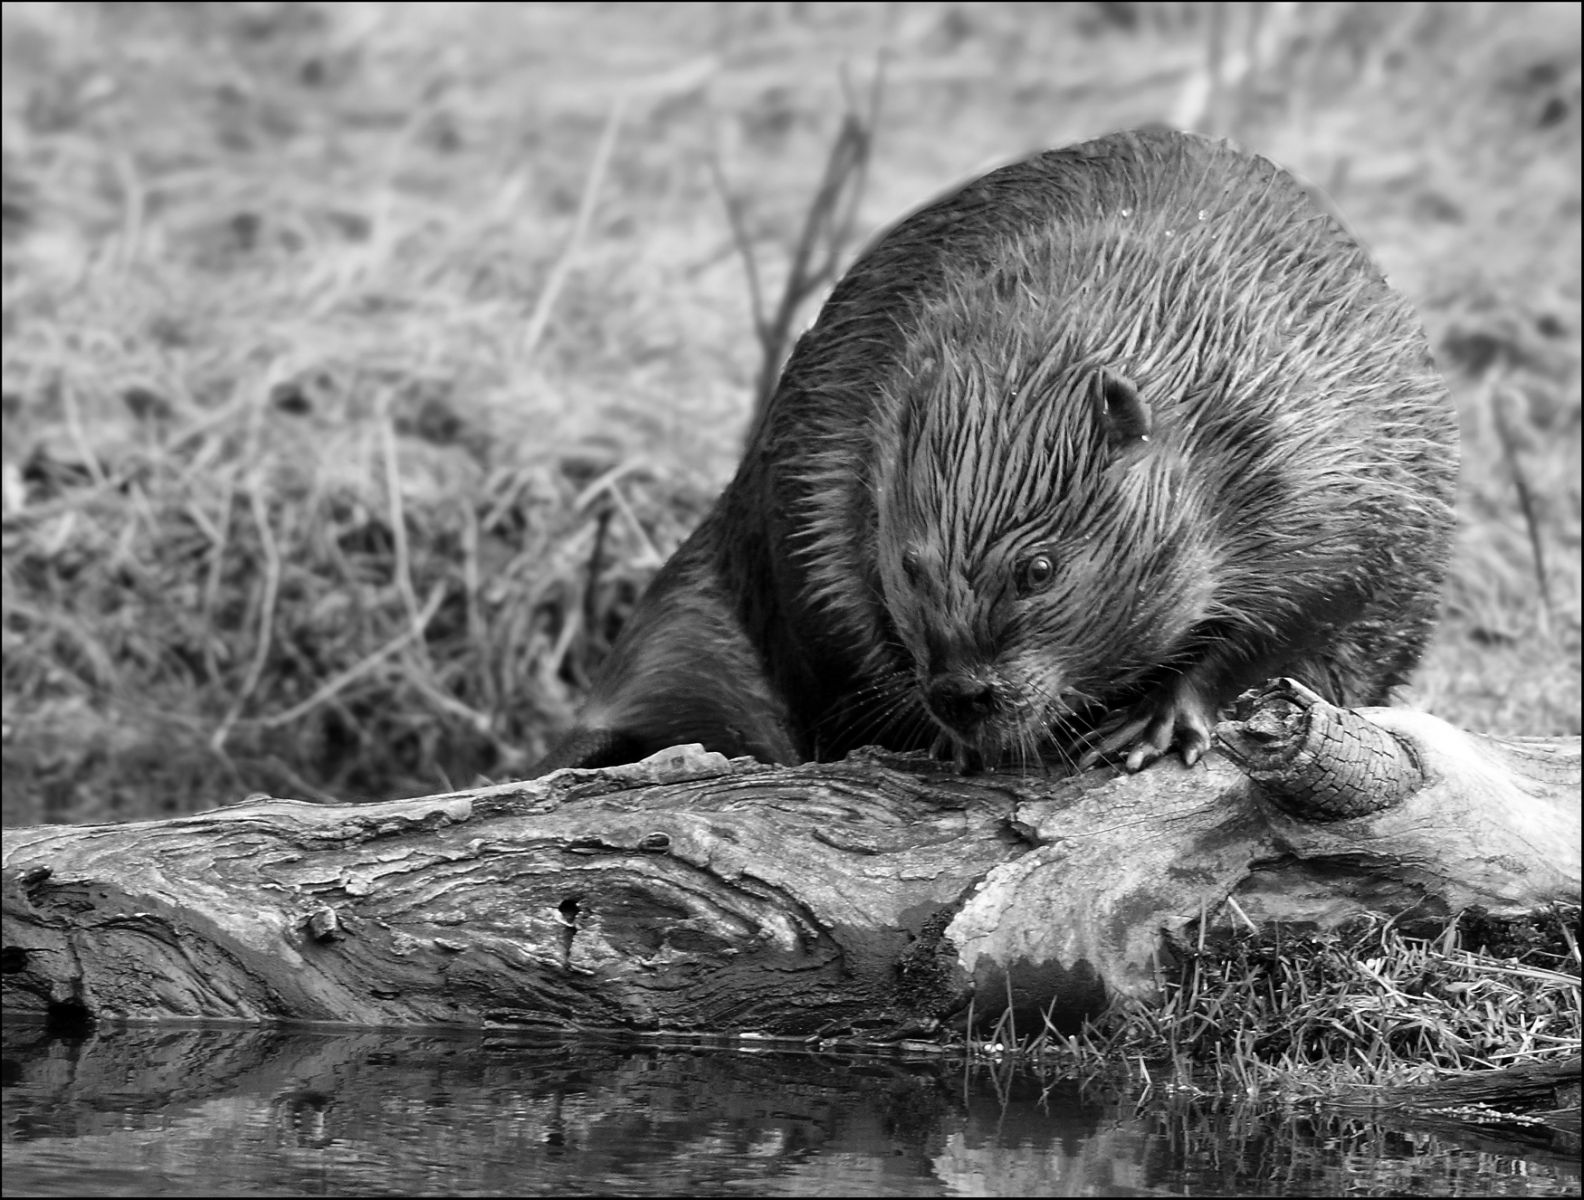 Beaver - Photo by Pat Gaines